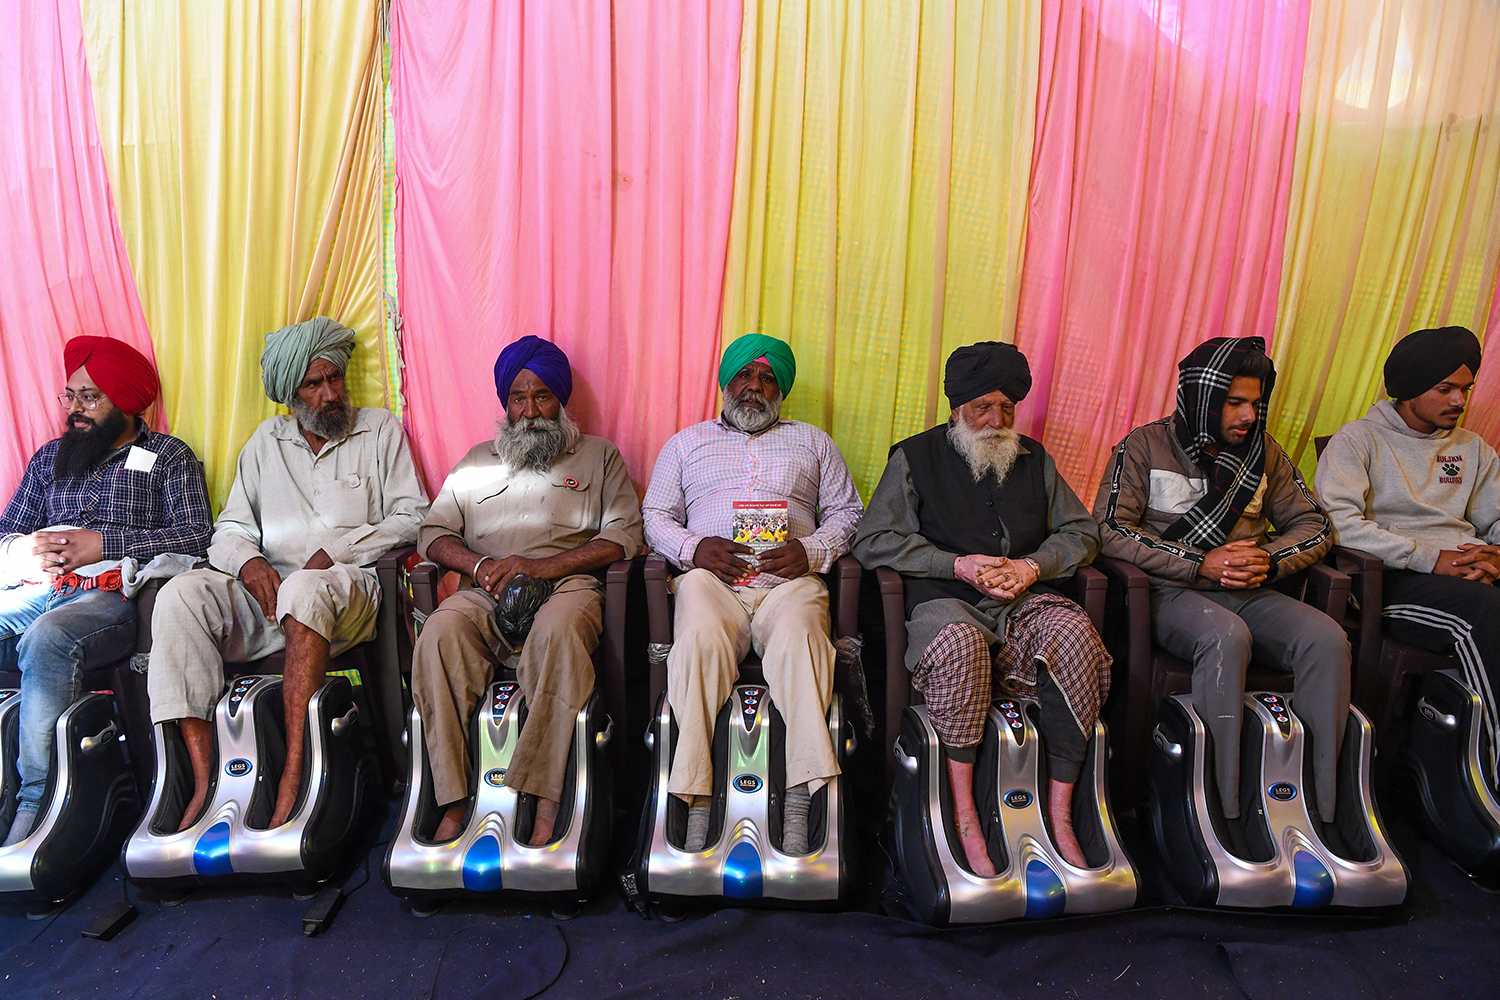 Indian farmers get foot massages inside a tent as they continue to demonstrate against the central government's recent agricultural reforms by blocking a highway at the Delhi-Haryana state border in Singhu on Dec. 21. SAJJAD HUSSAIN/AFP via Getty Images